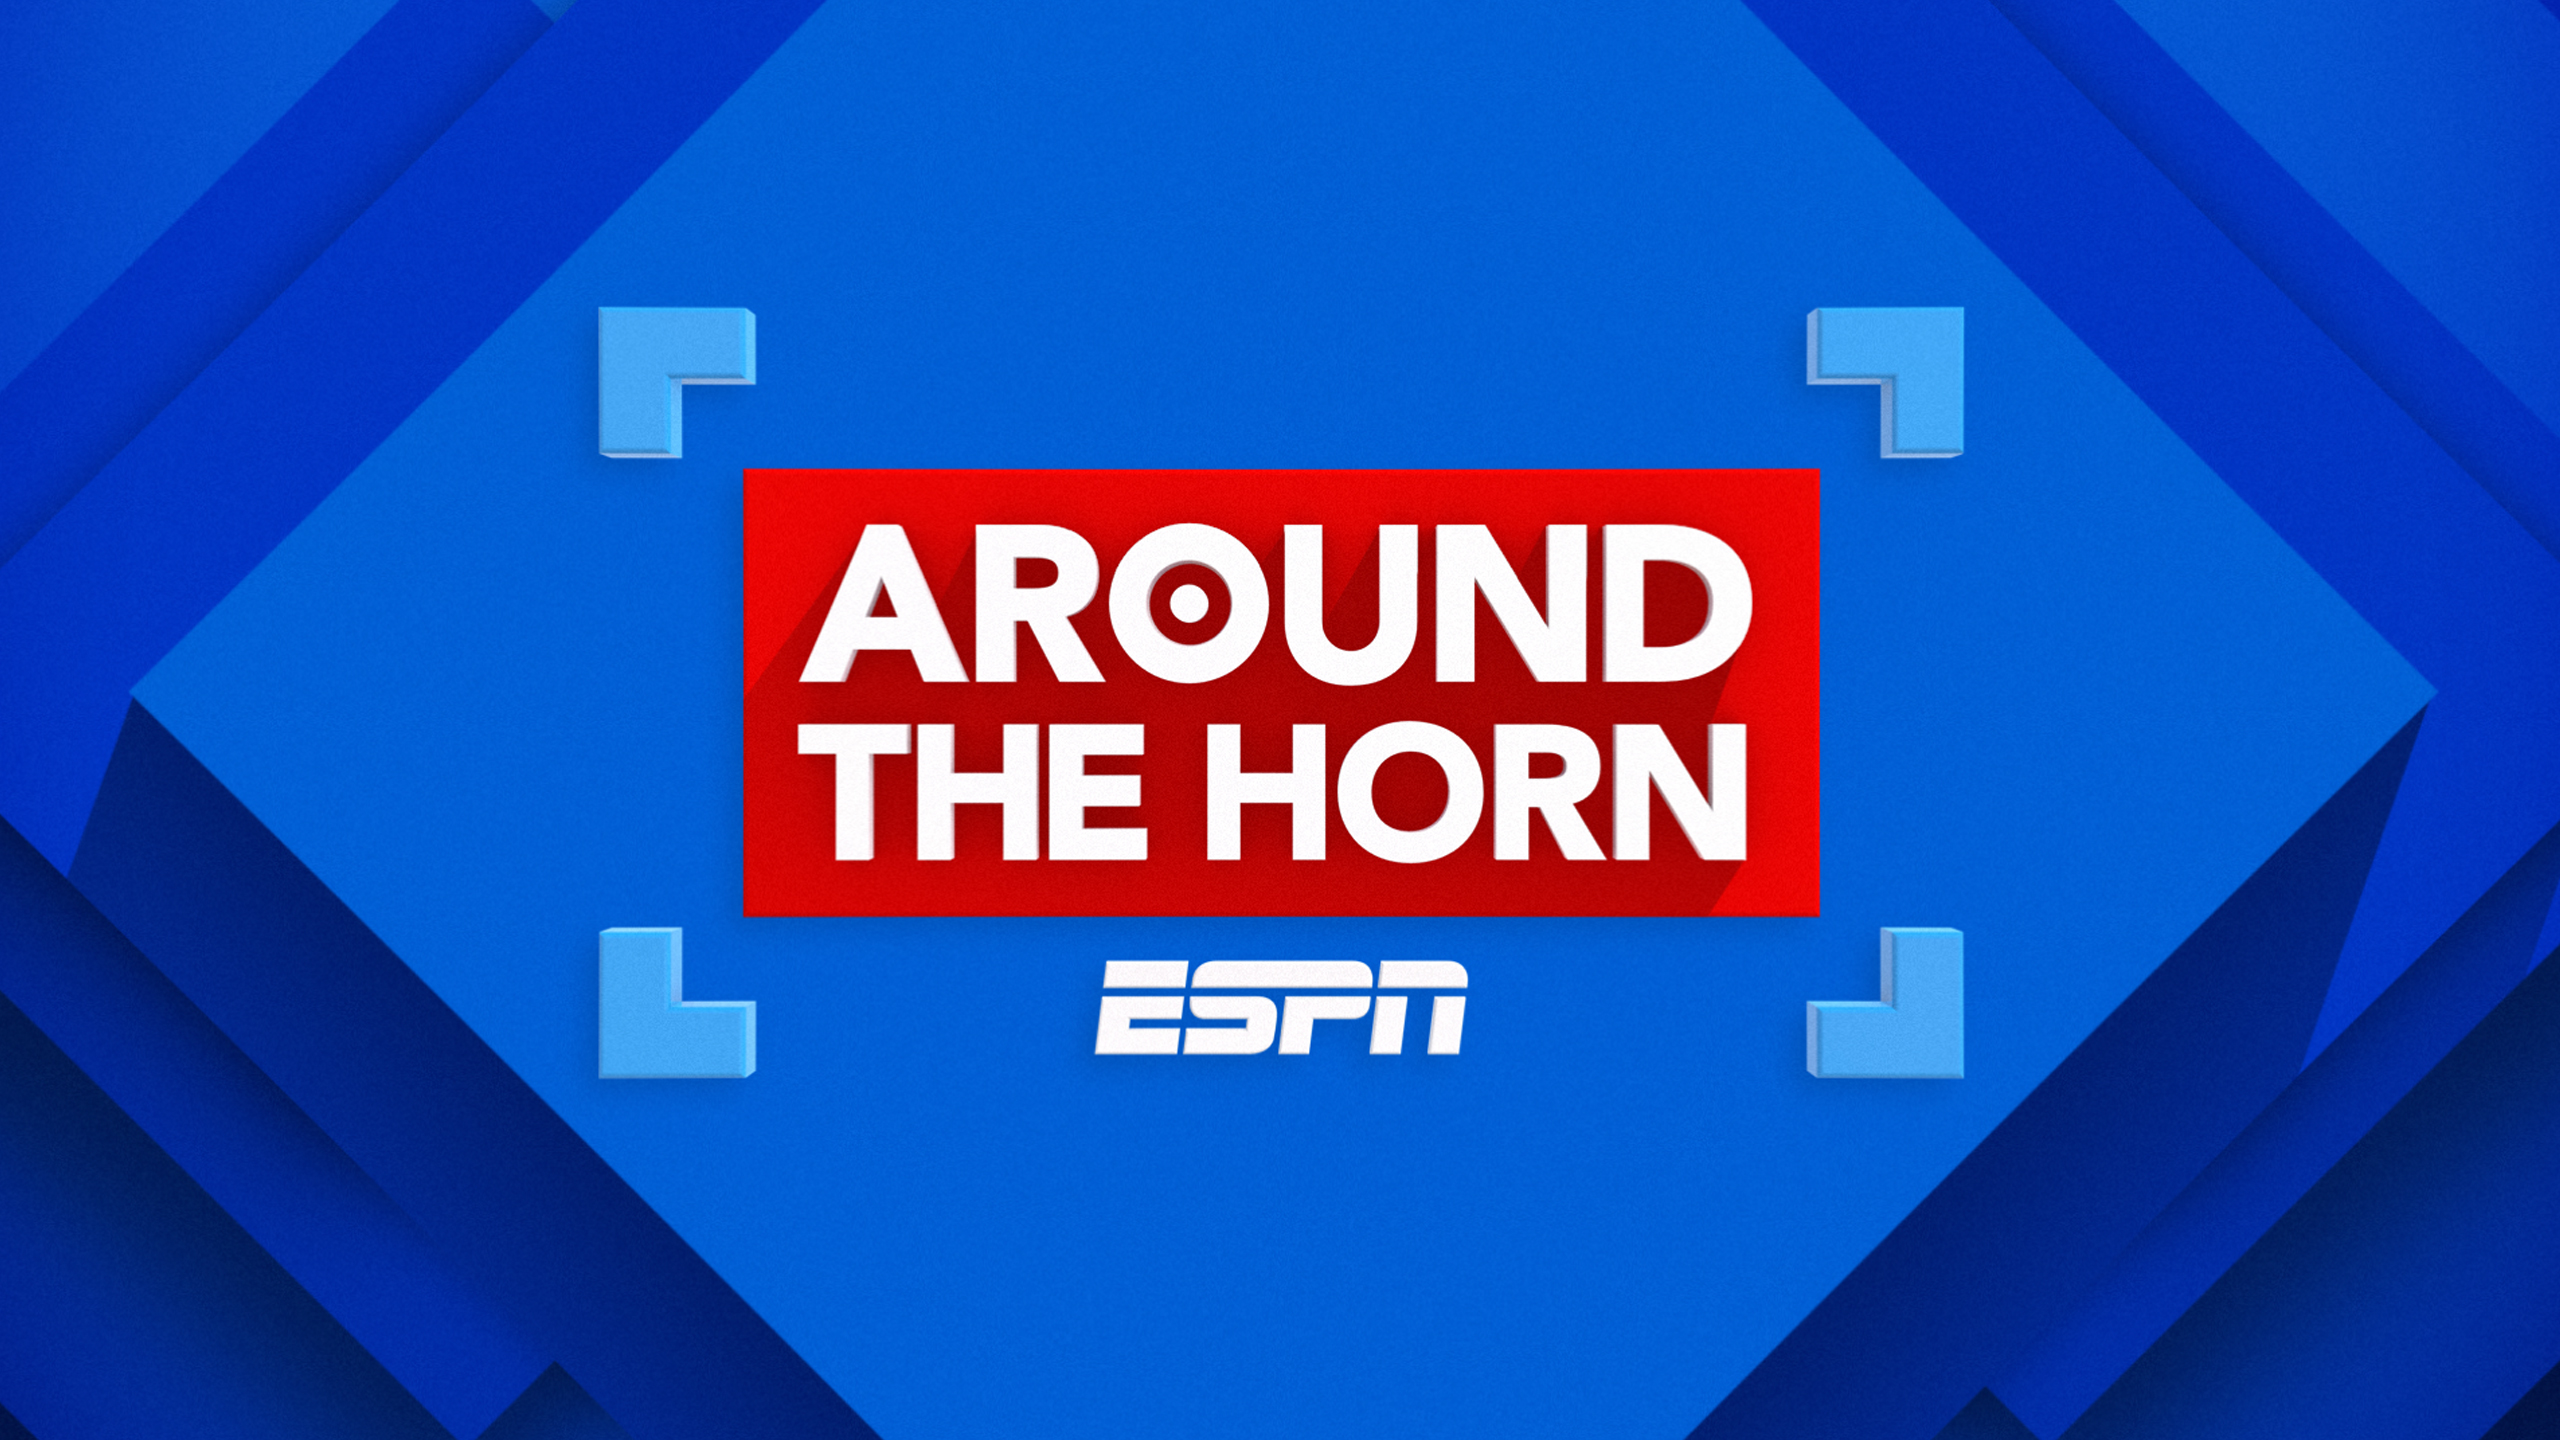 Tue, 12/11 - Around The Horn